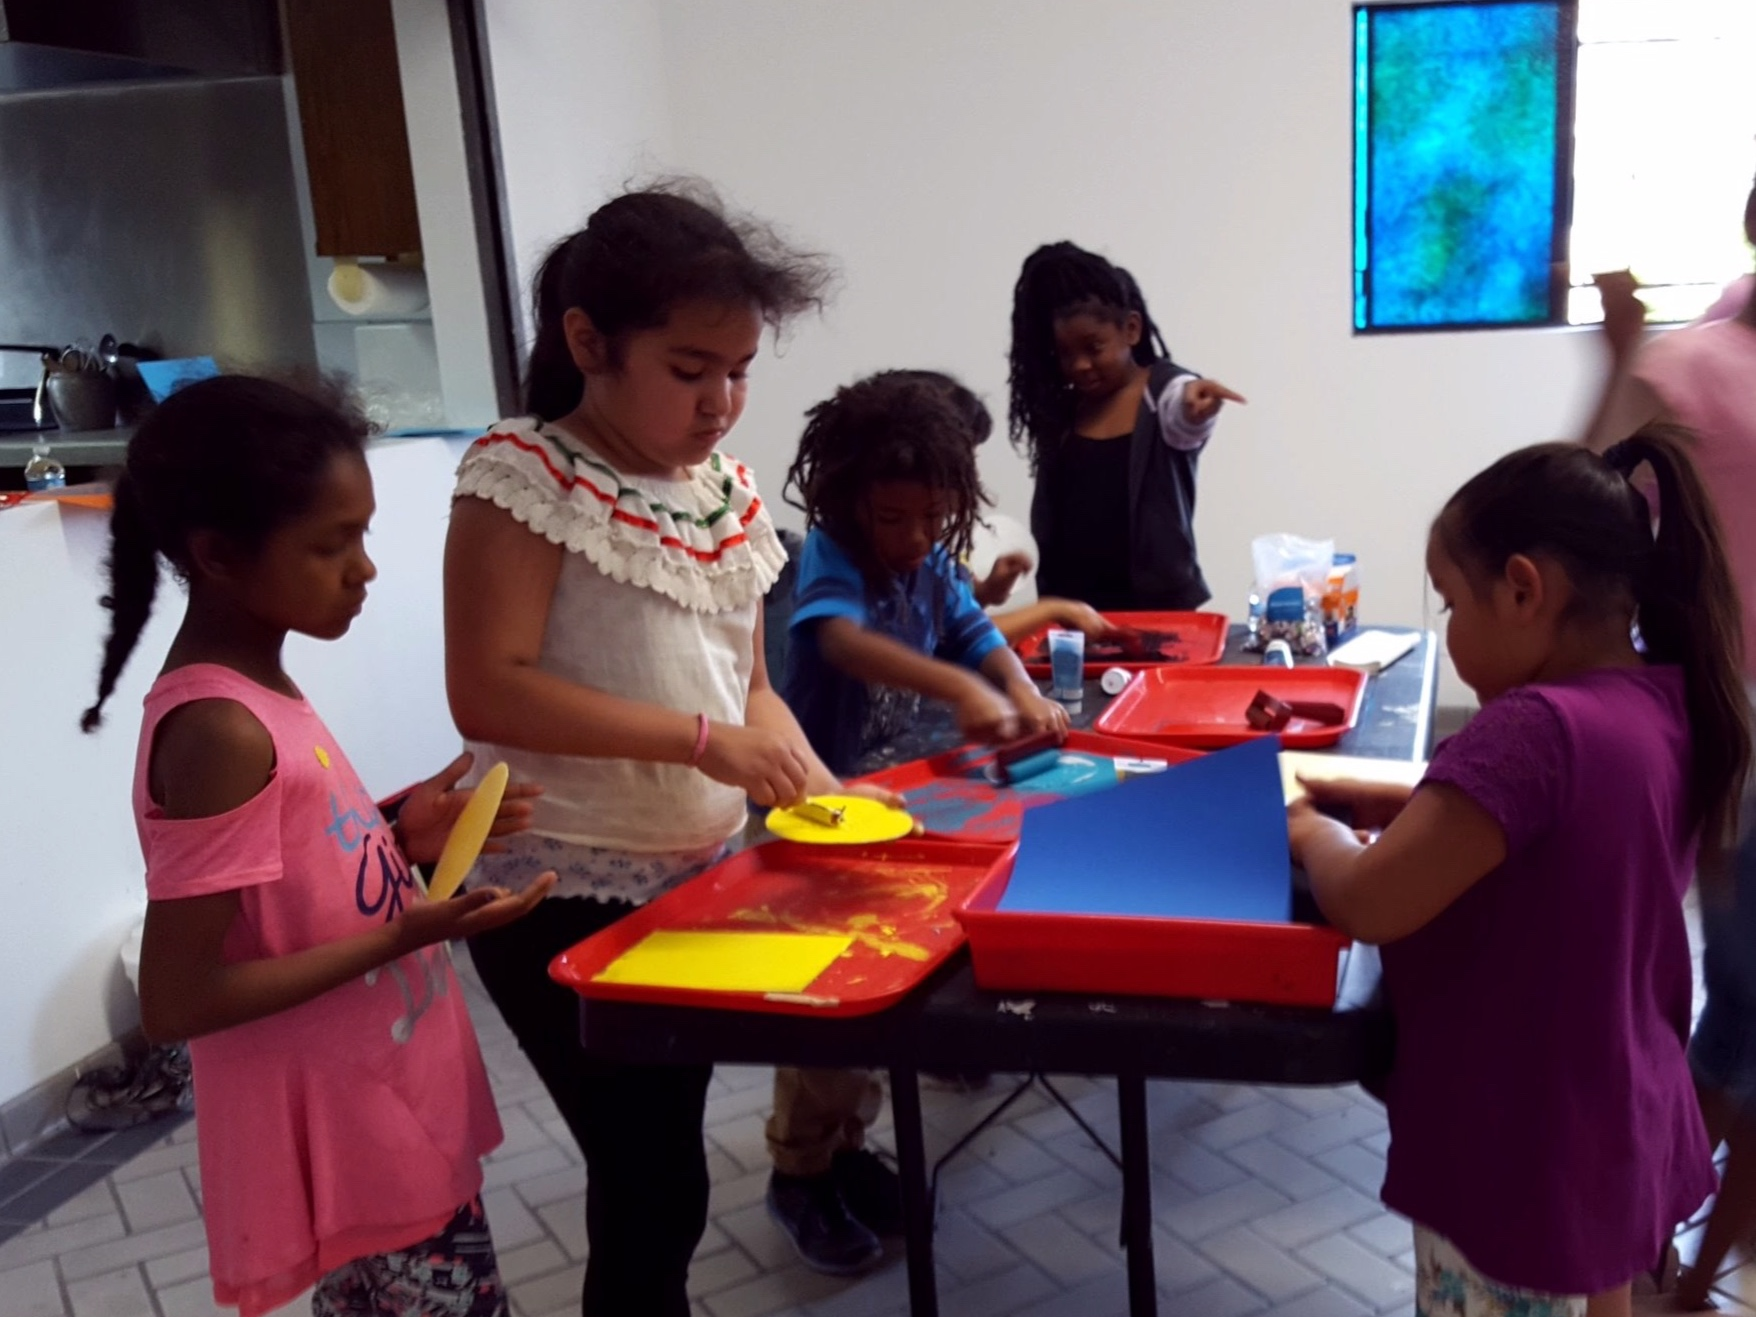 Family Art Workshops/ Talleres de arte para familias   Ongoing; January - June  Regularmente: Enero - Junio